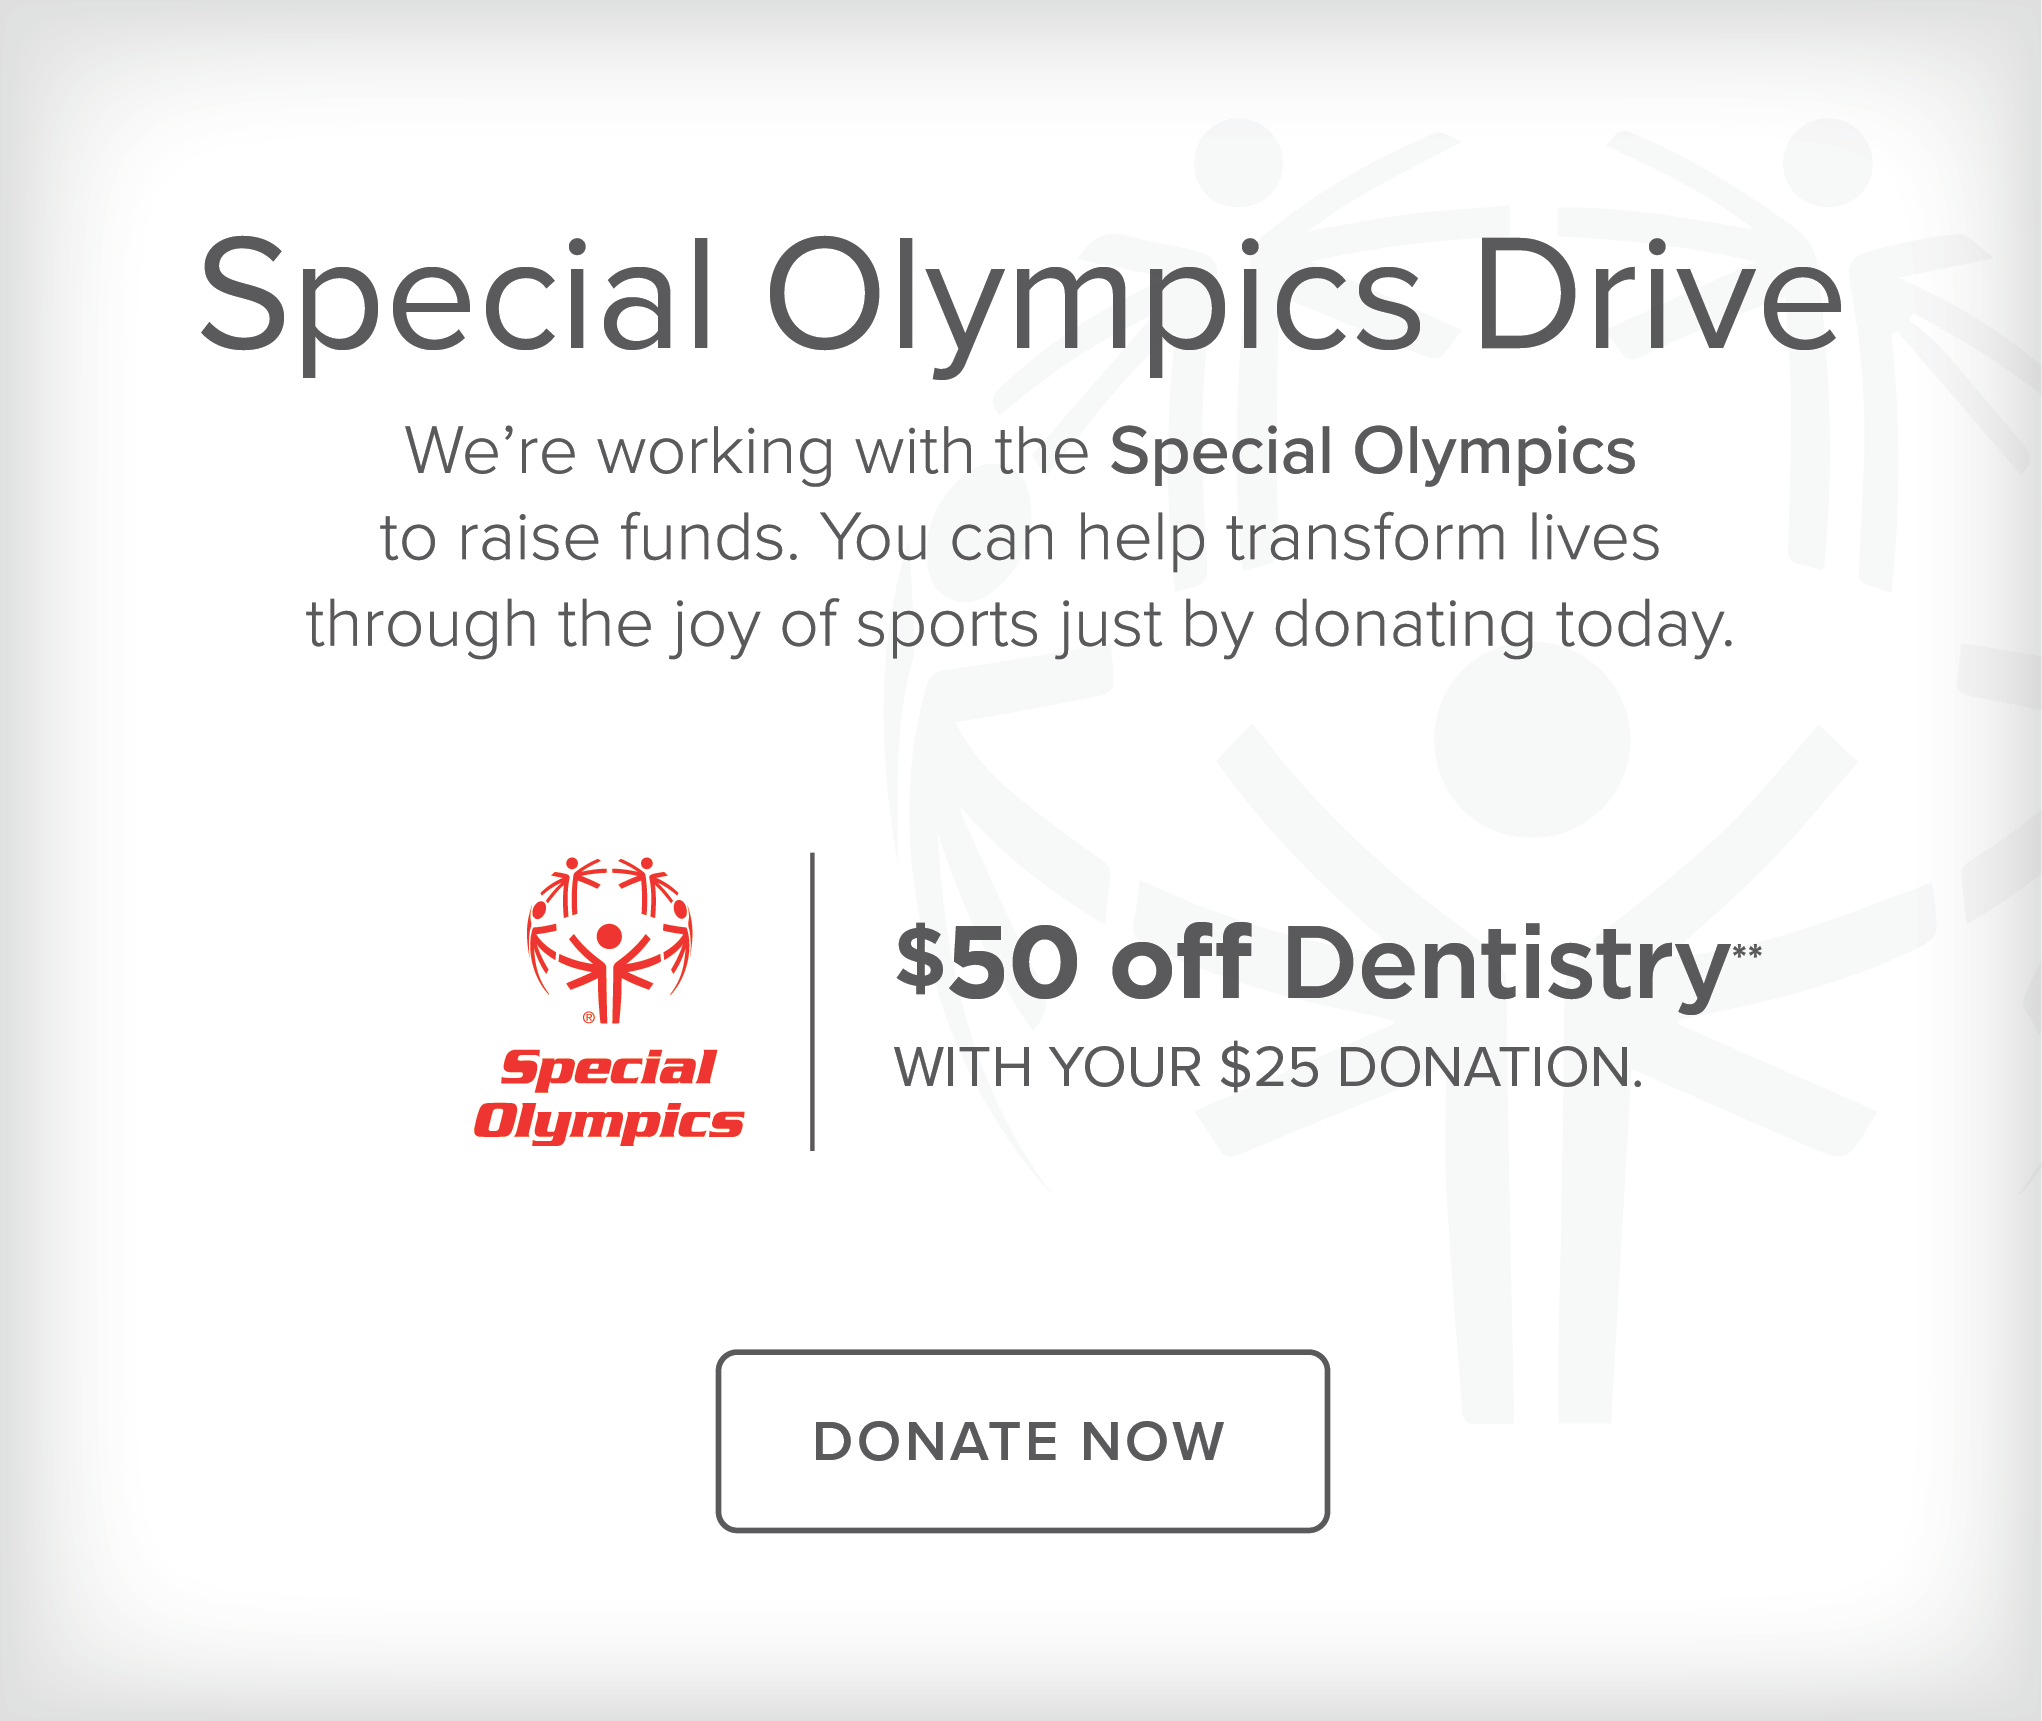 Special Olympics Drive - Crestline Dental Group and Orthodontics